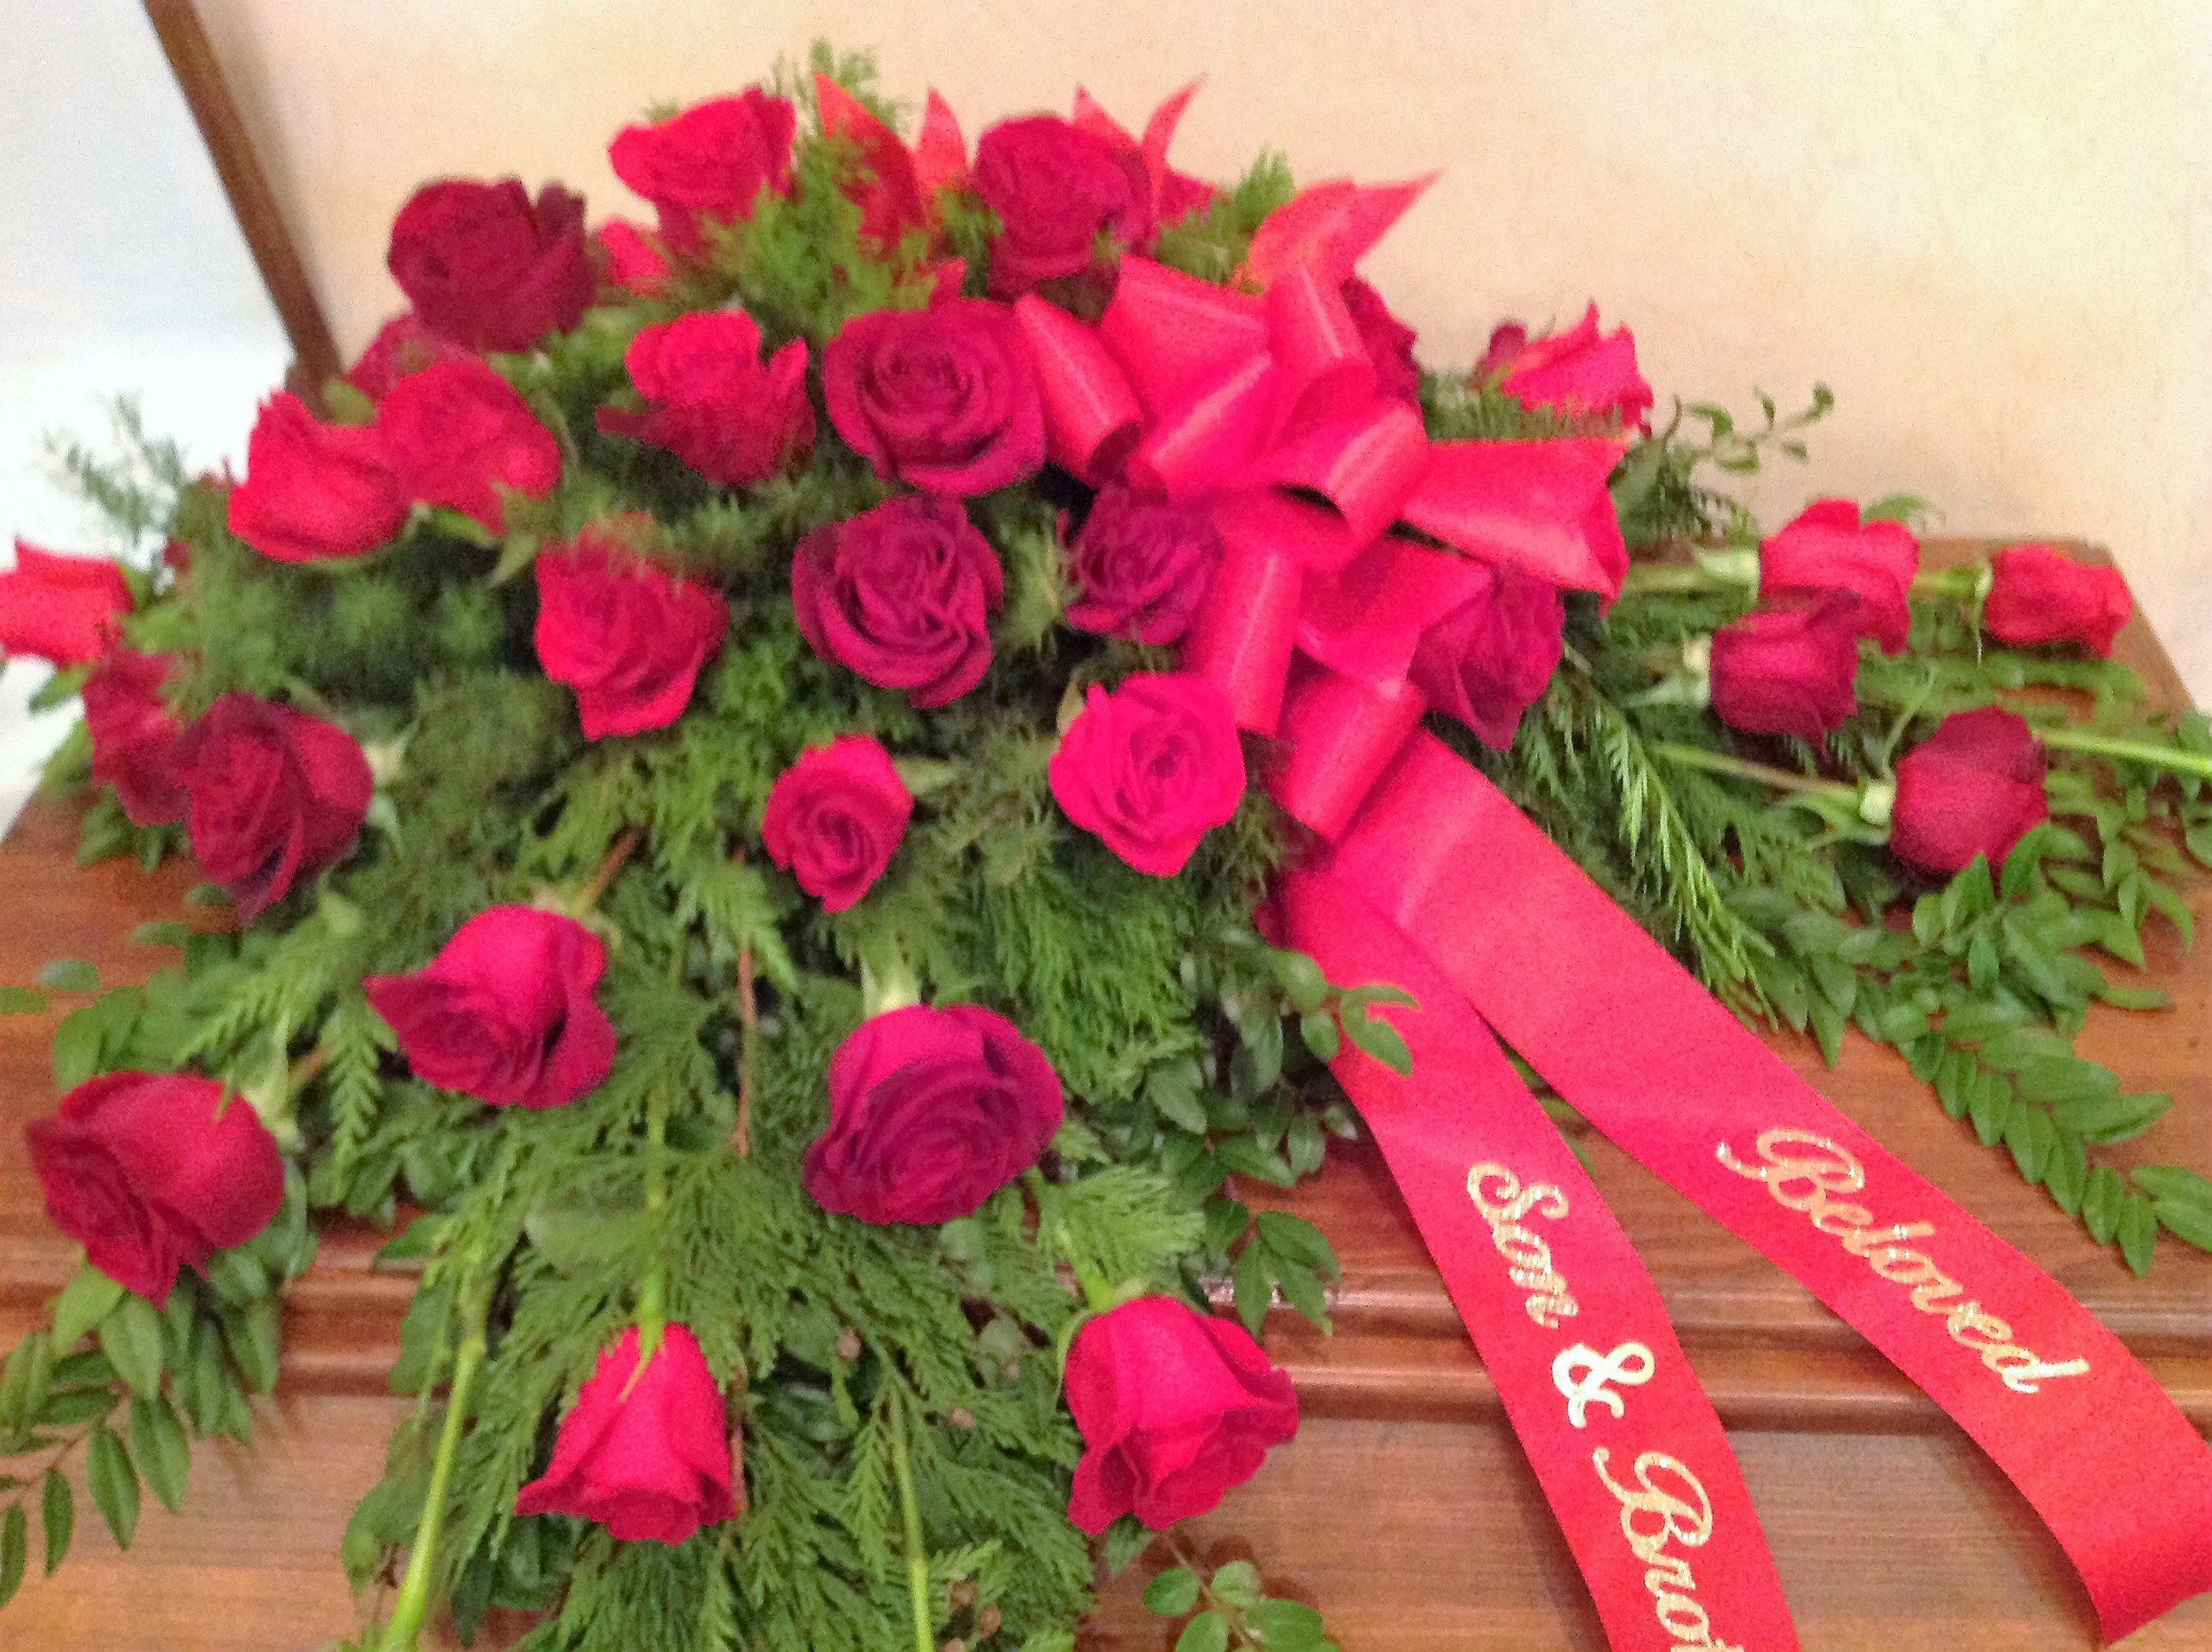 #3 Red roses, evergreens casket spray